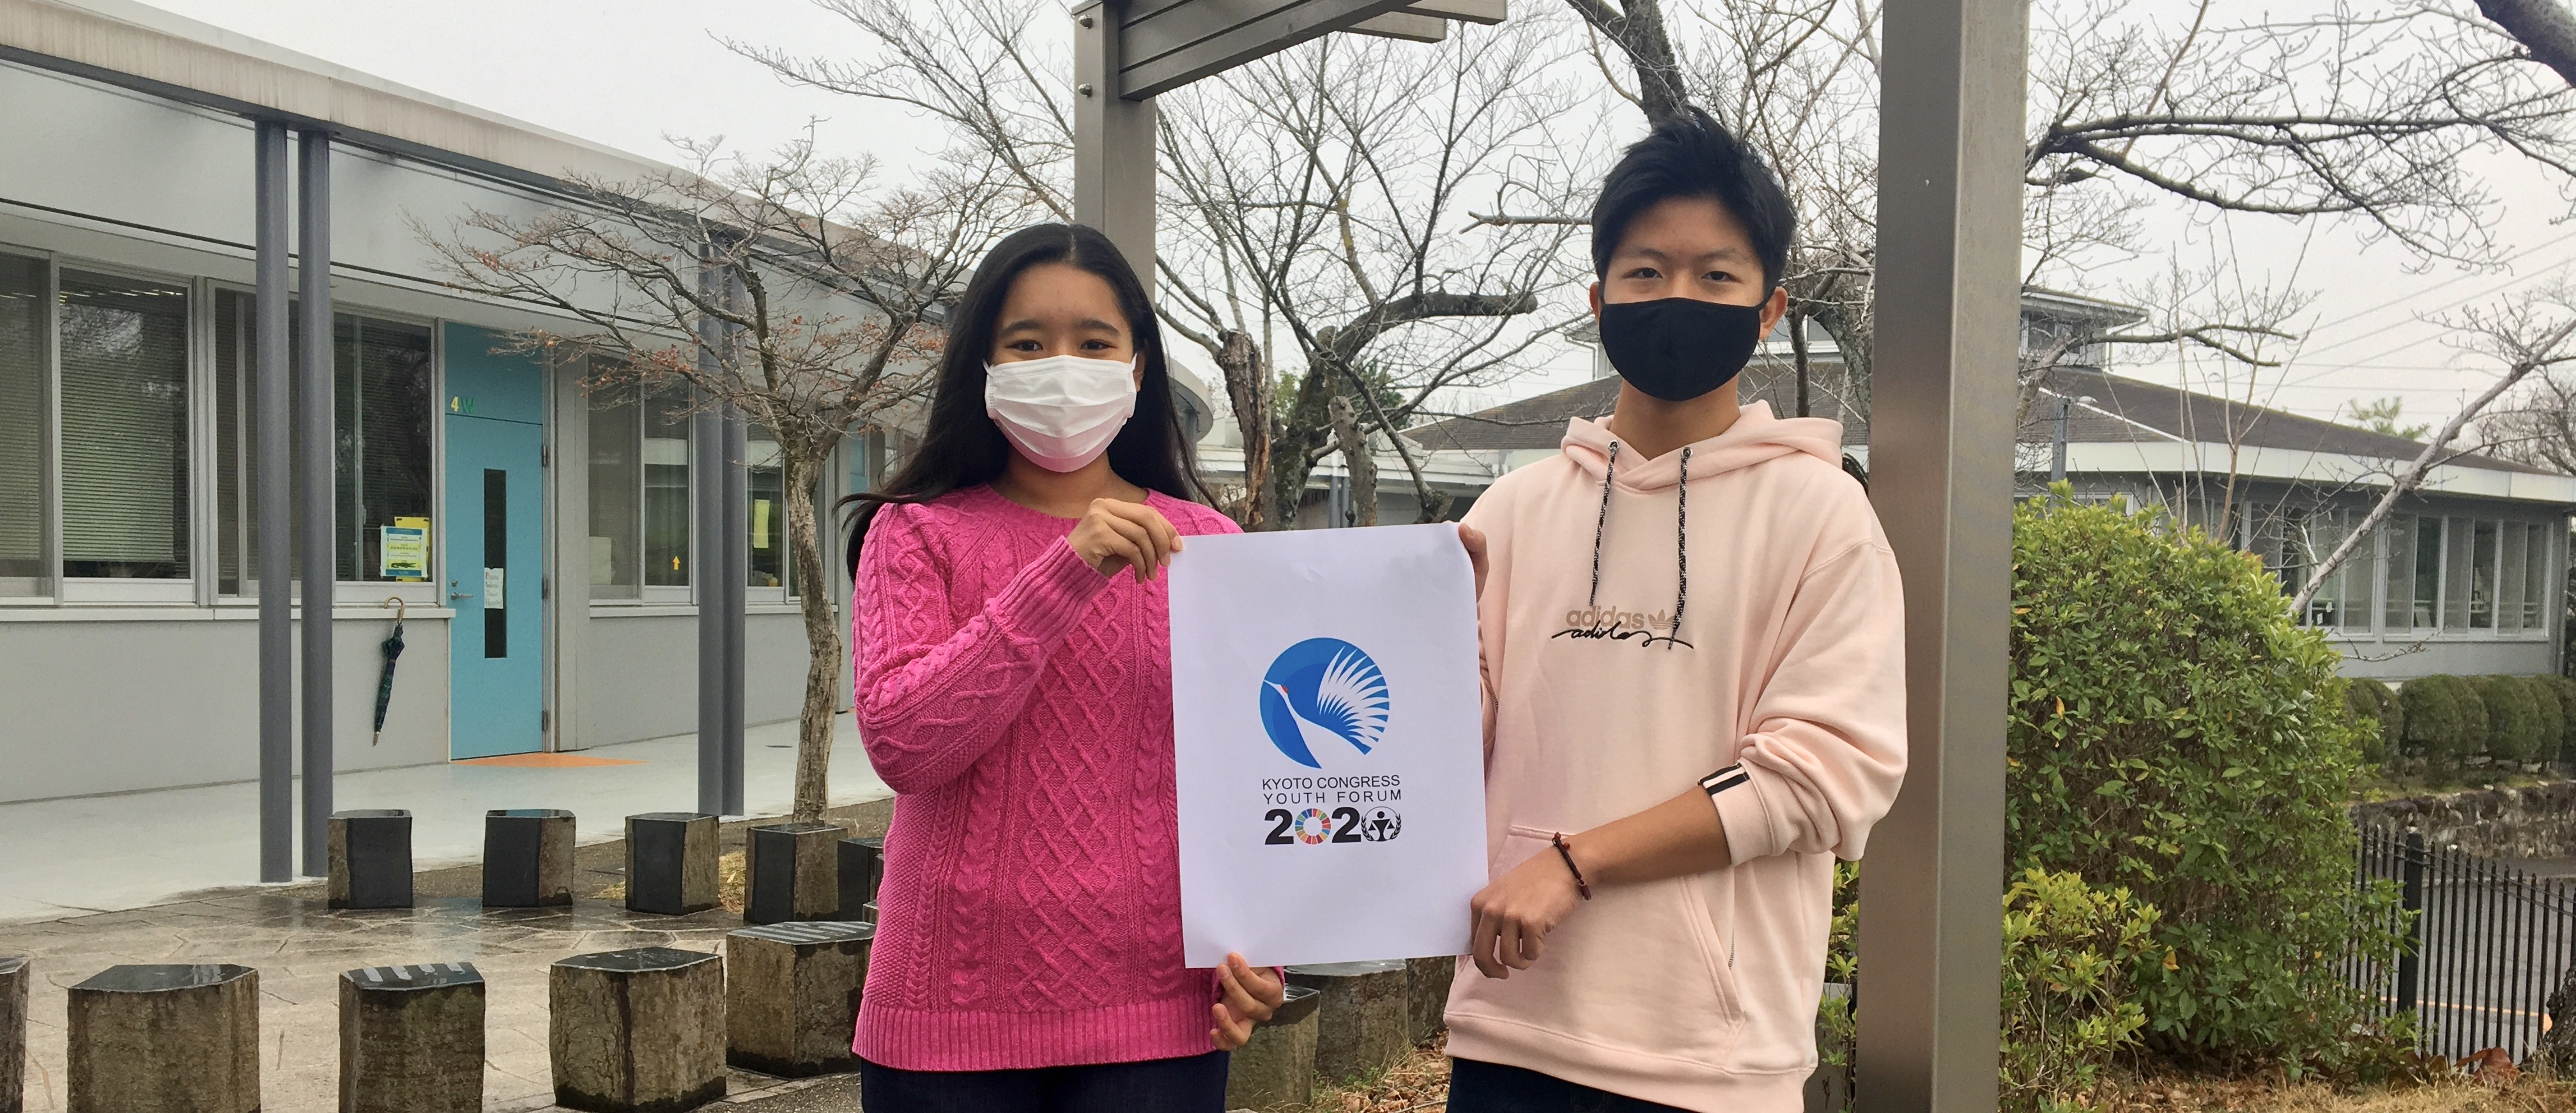 A boy and a girl holding a poster of Kyogo Congress Youth Forum